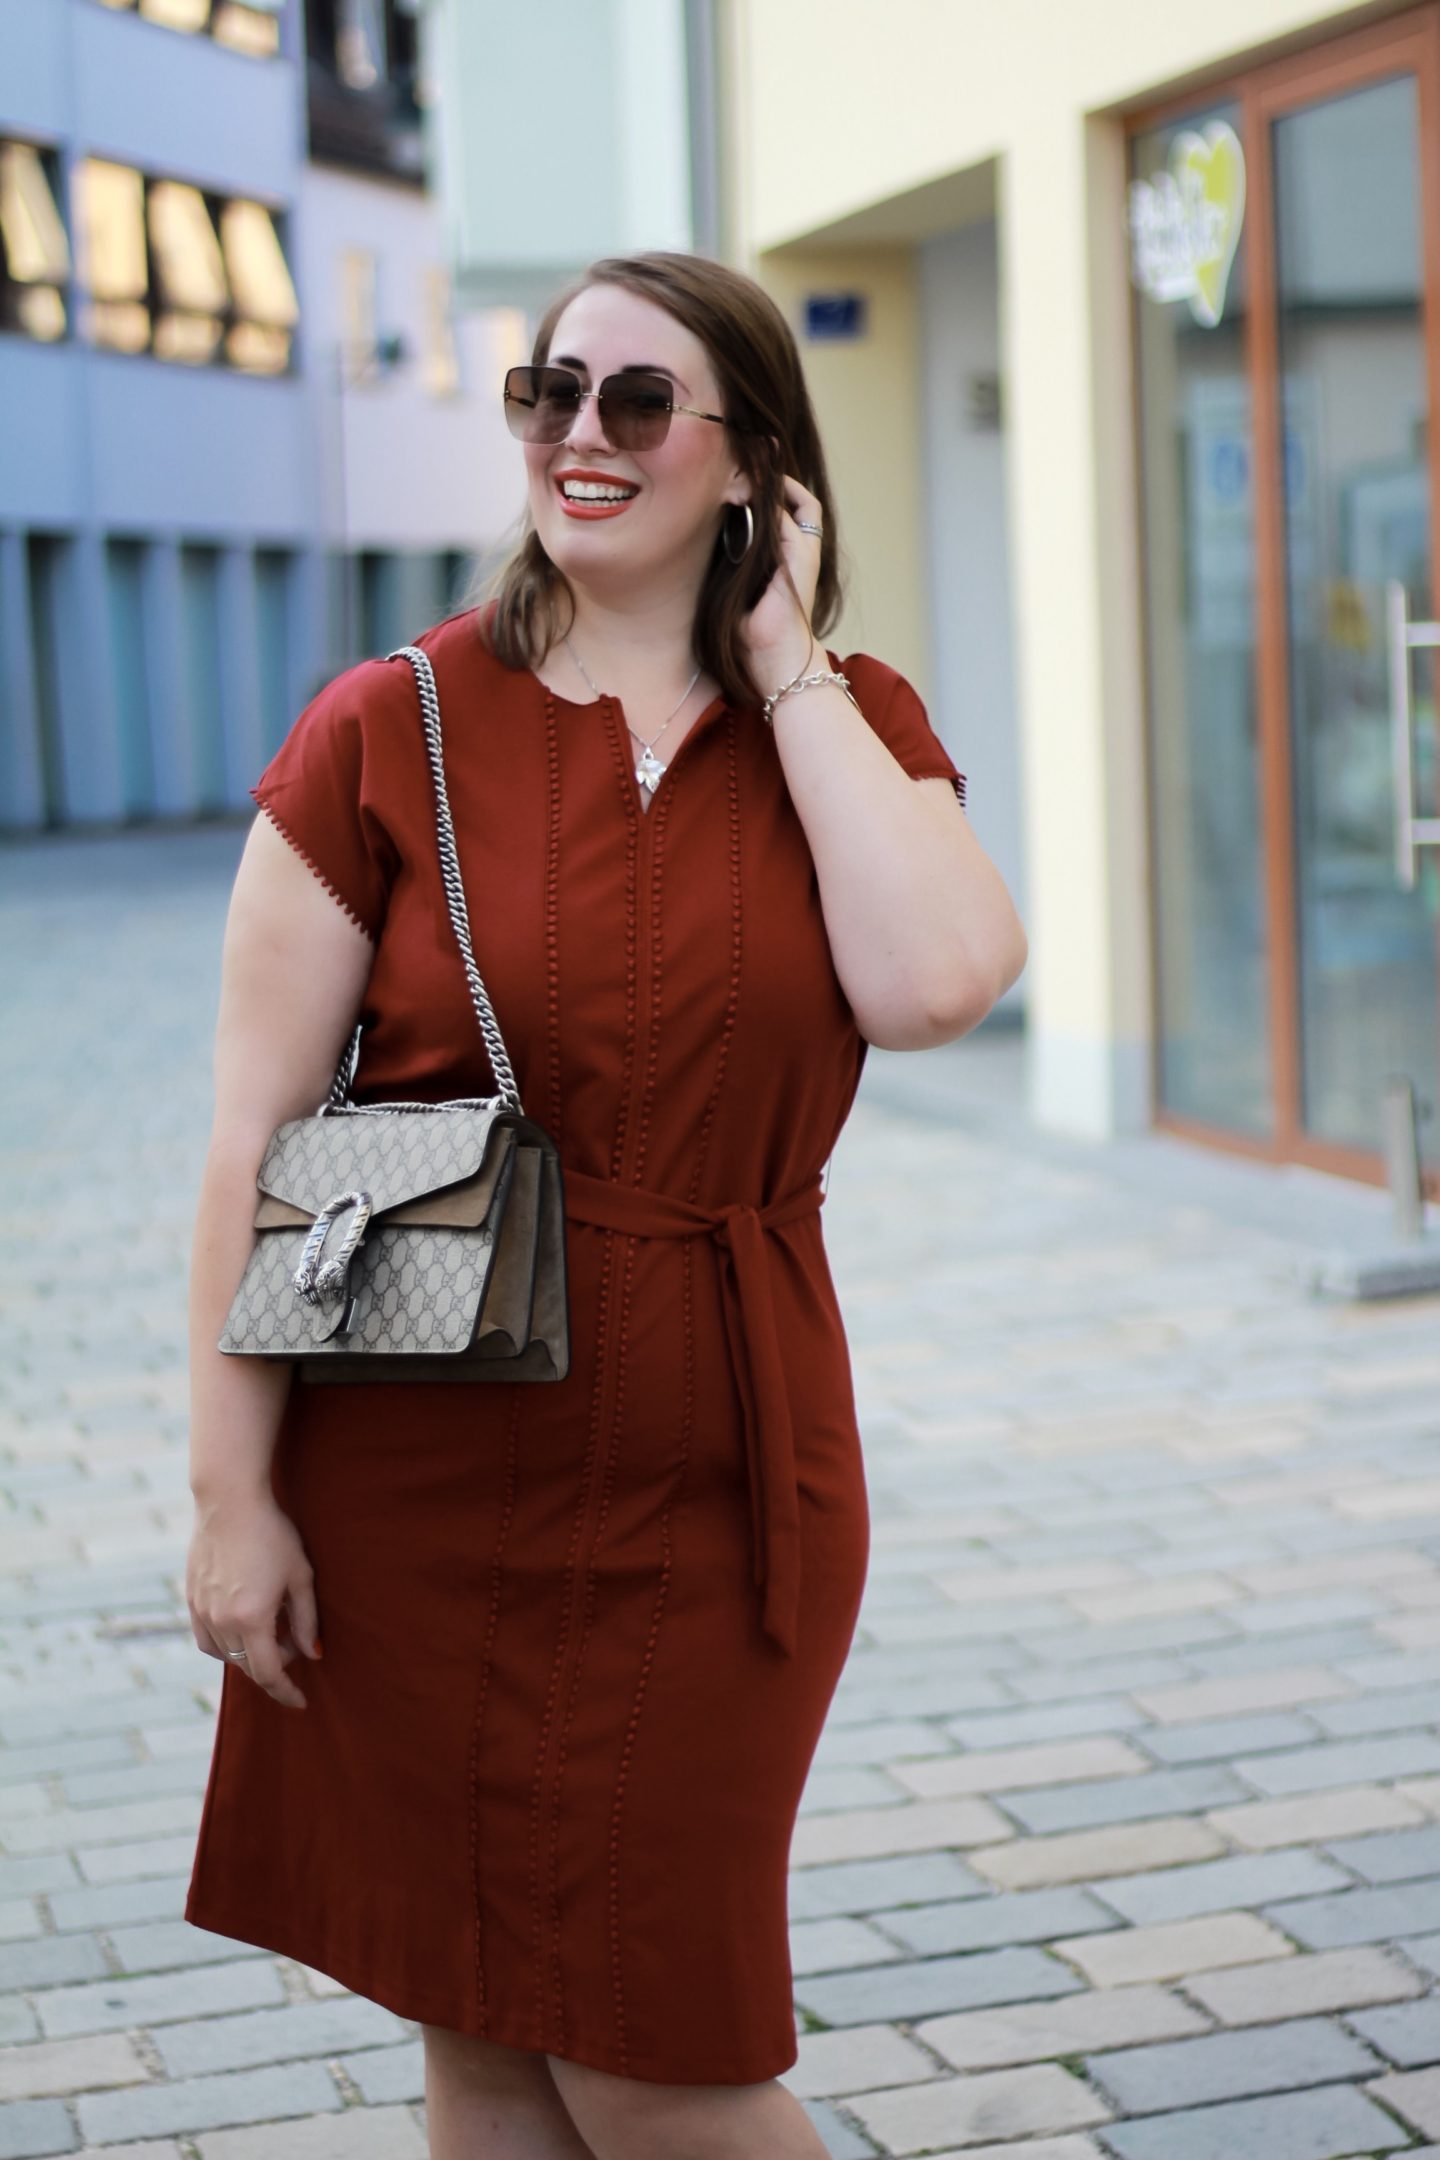 Miss-Suzie-Loves-Sheego-Kleid-Pantone-Red-Pear-Bordeauxrot-Susanne-Heidebach-Fashionblogger-Muenchen